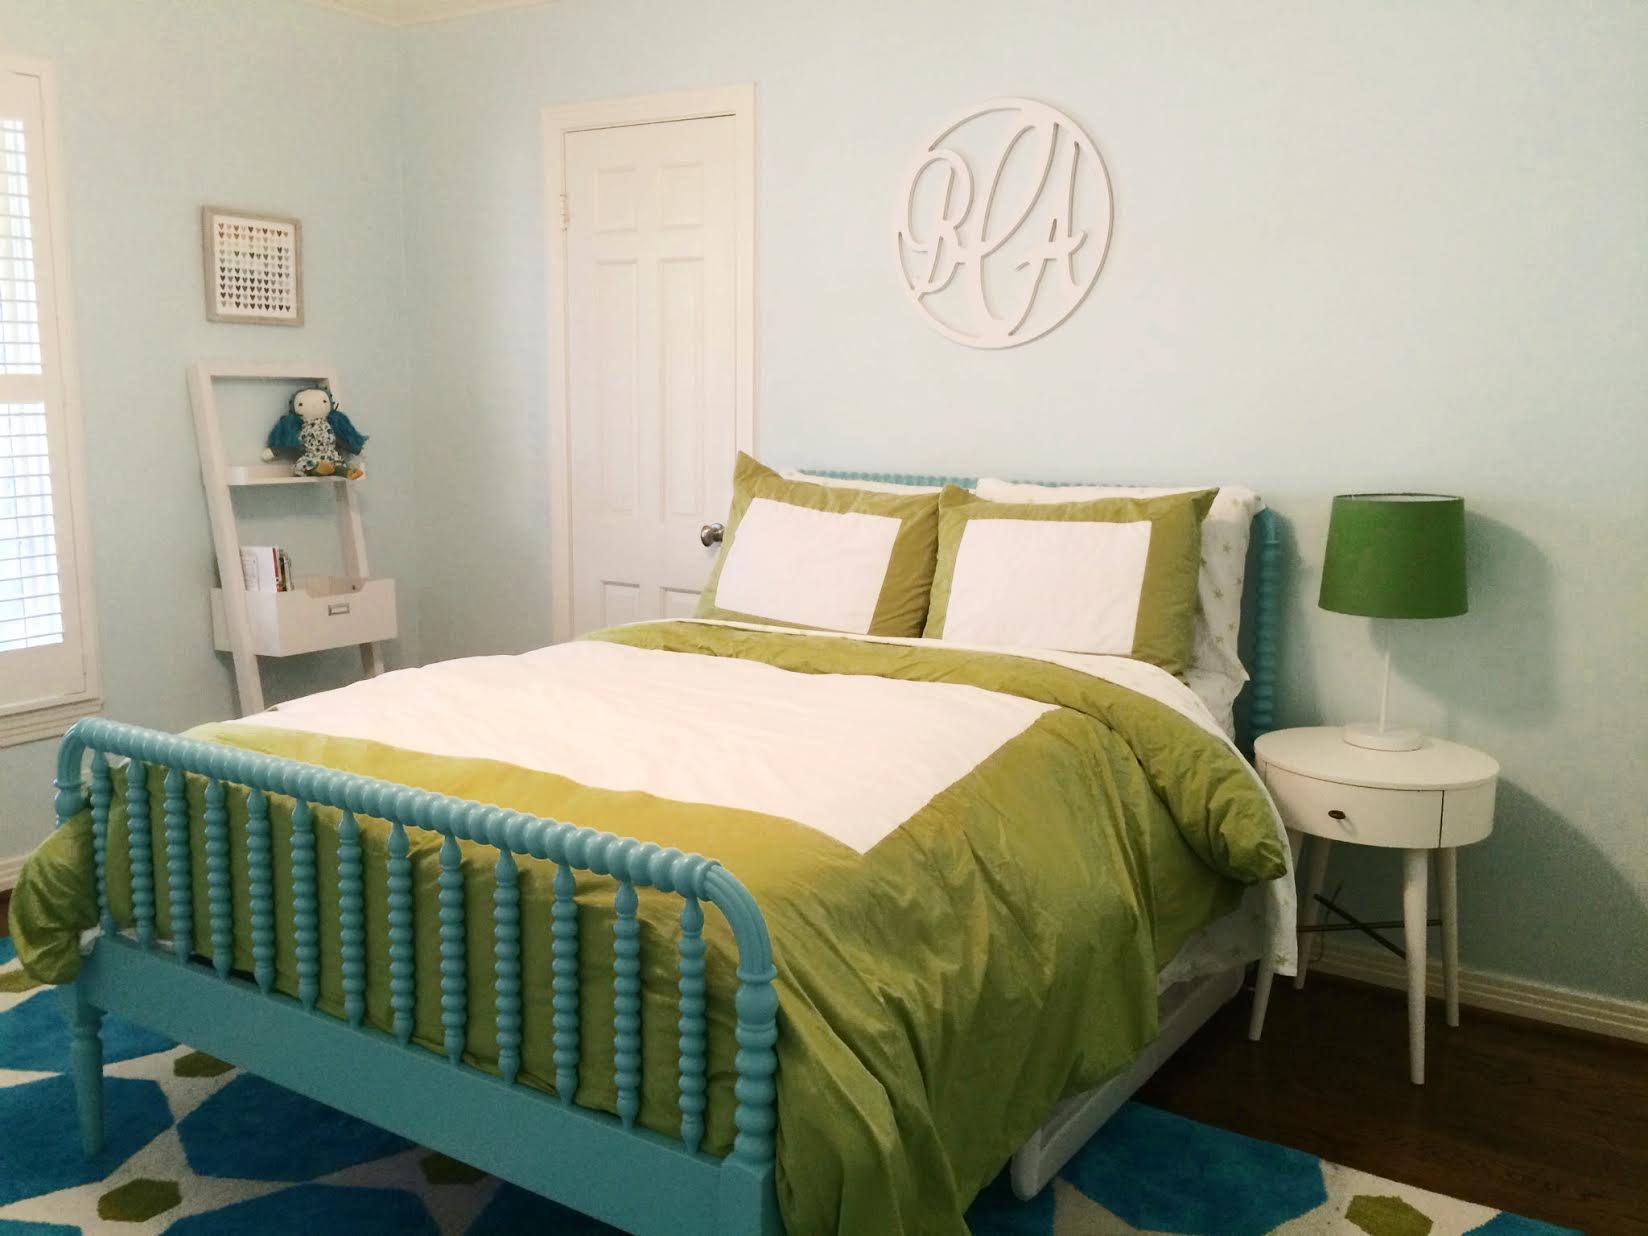 Fun & Bold Colors for a Kid's Room